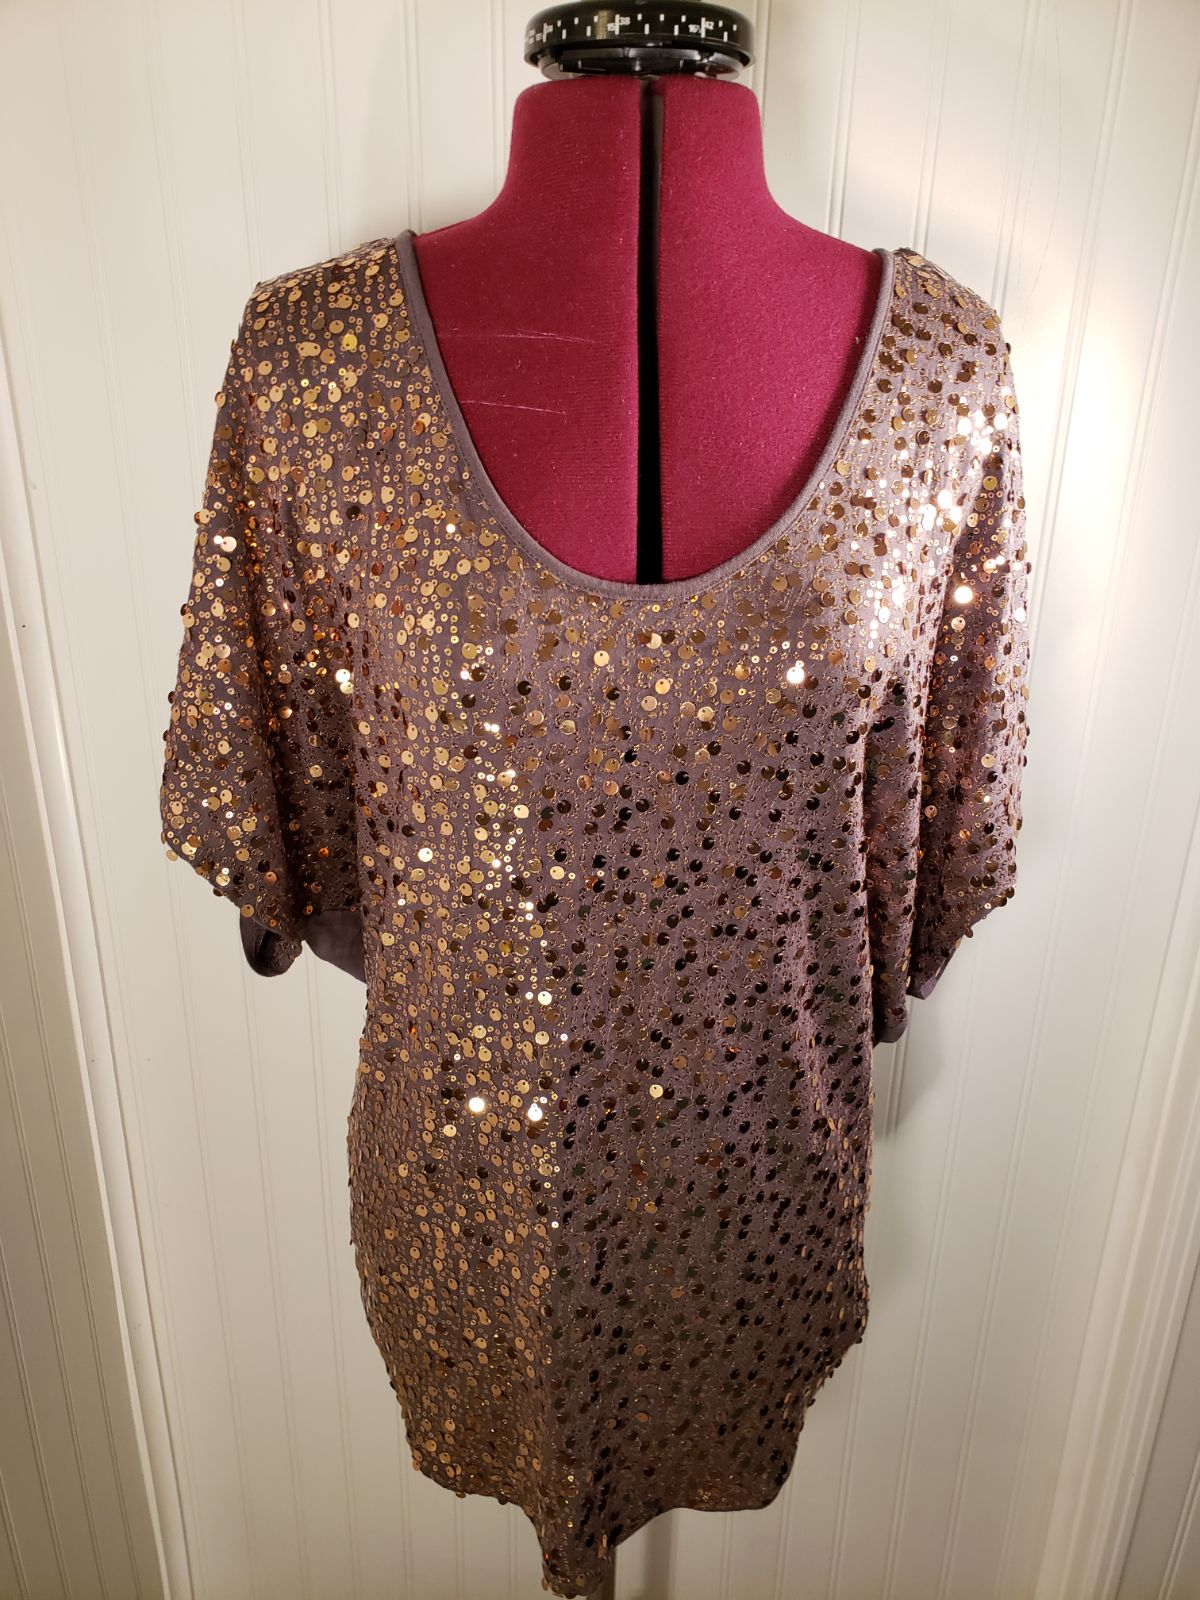 Remain Sequined Blouse SZ Med